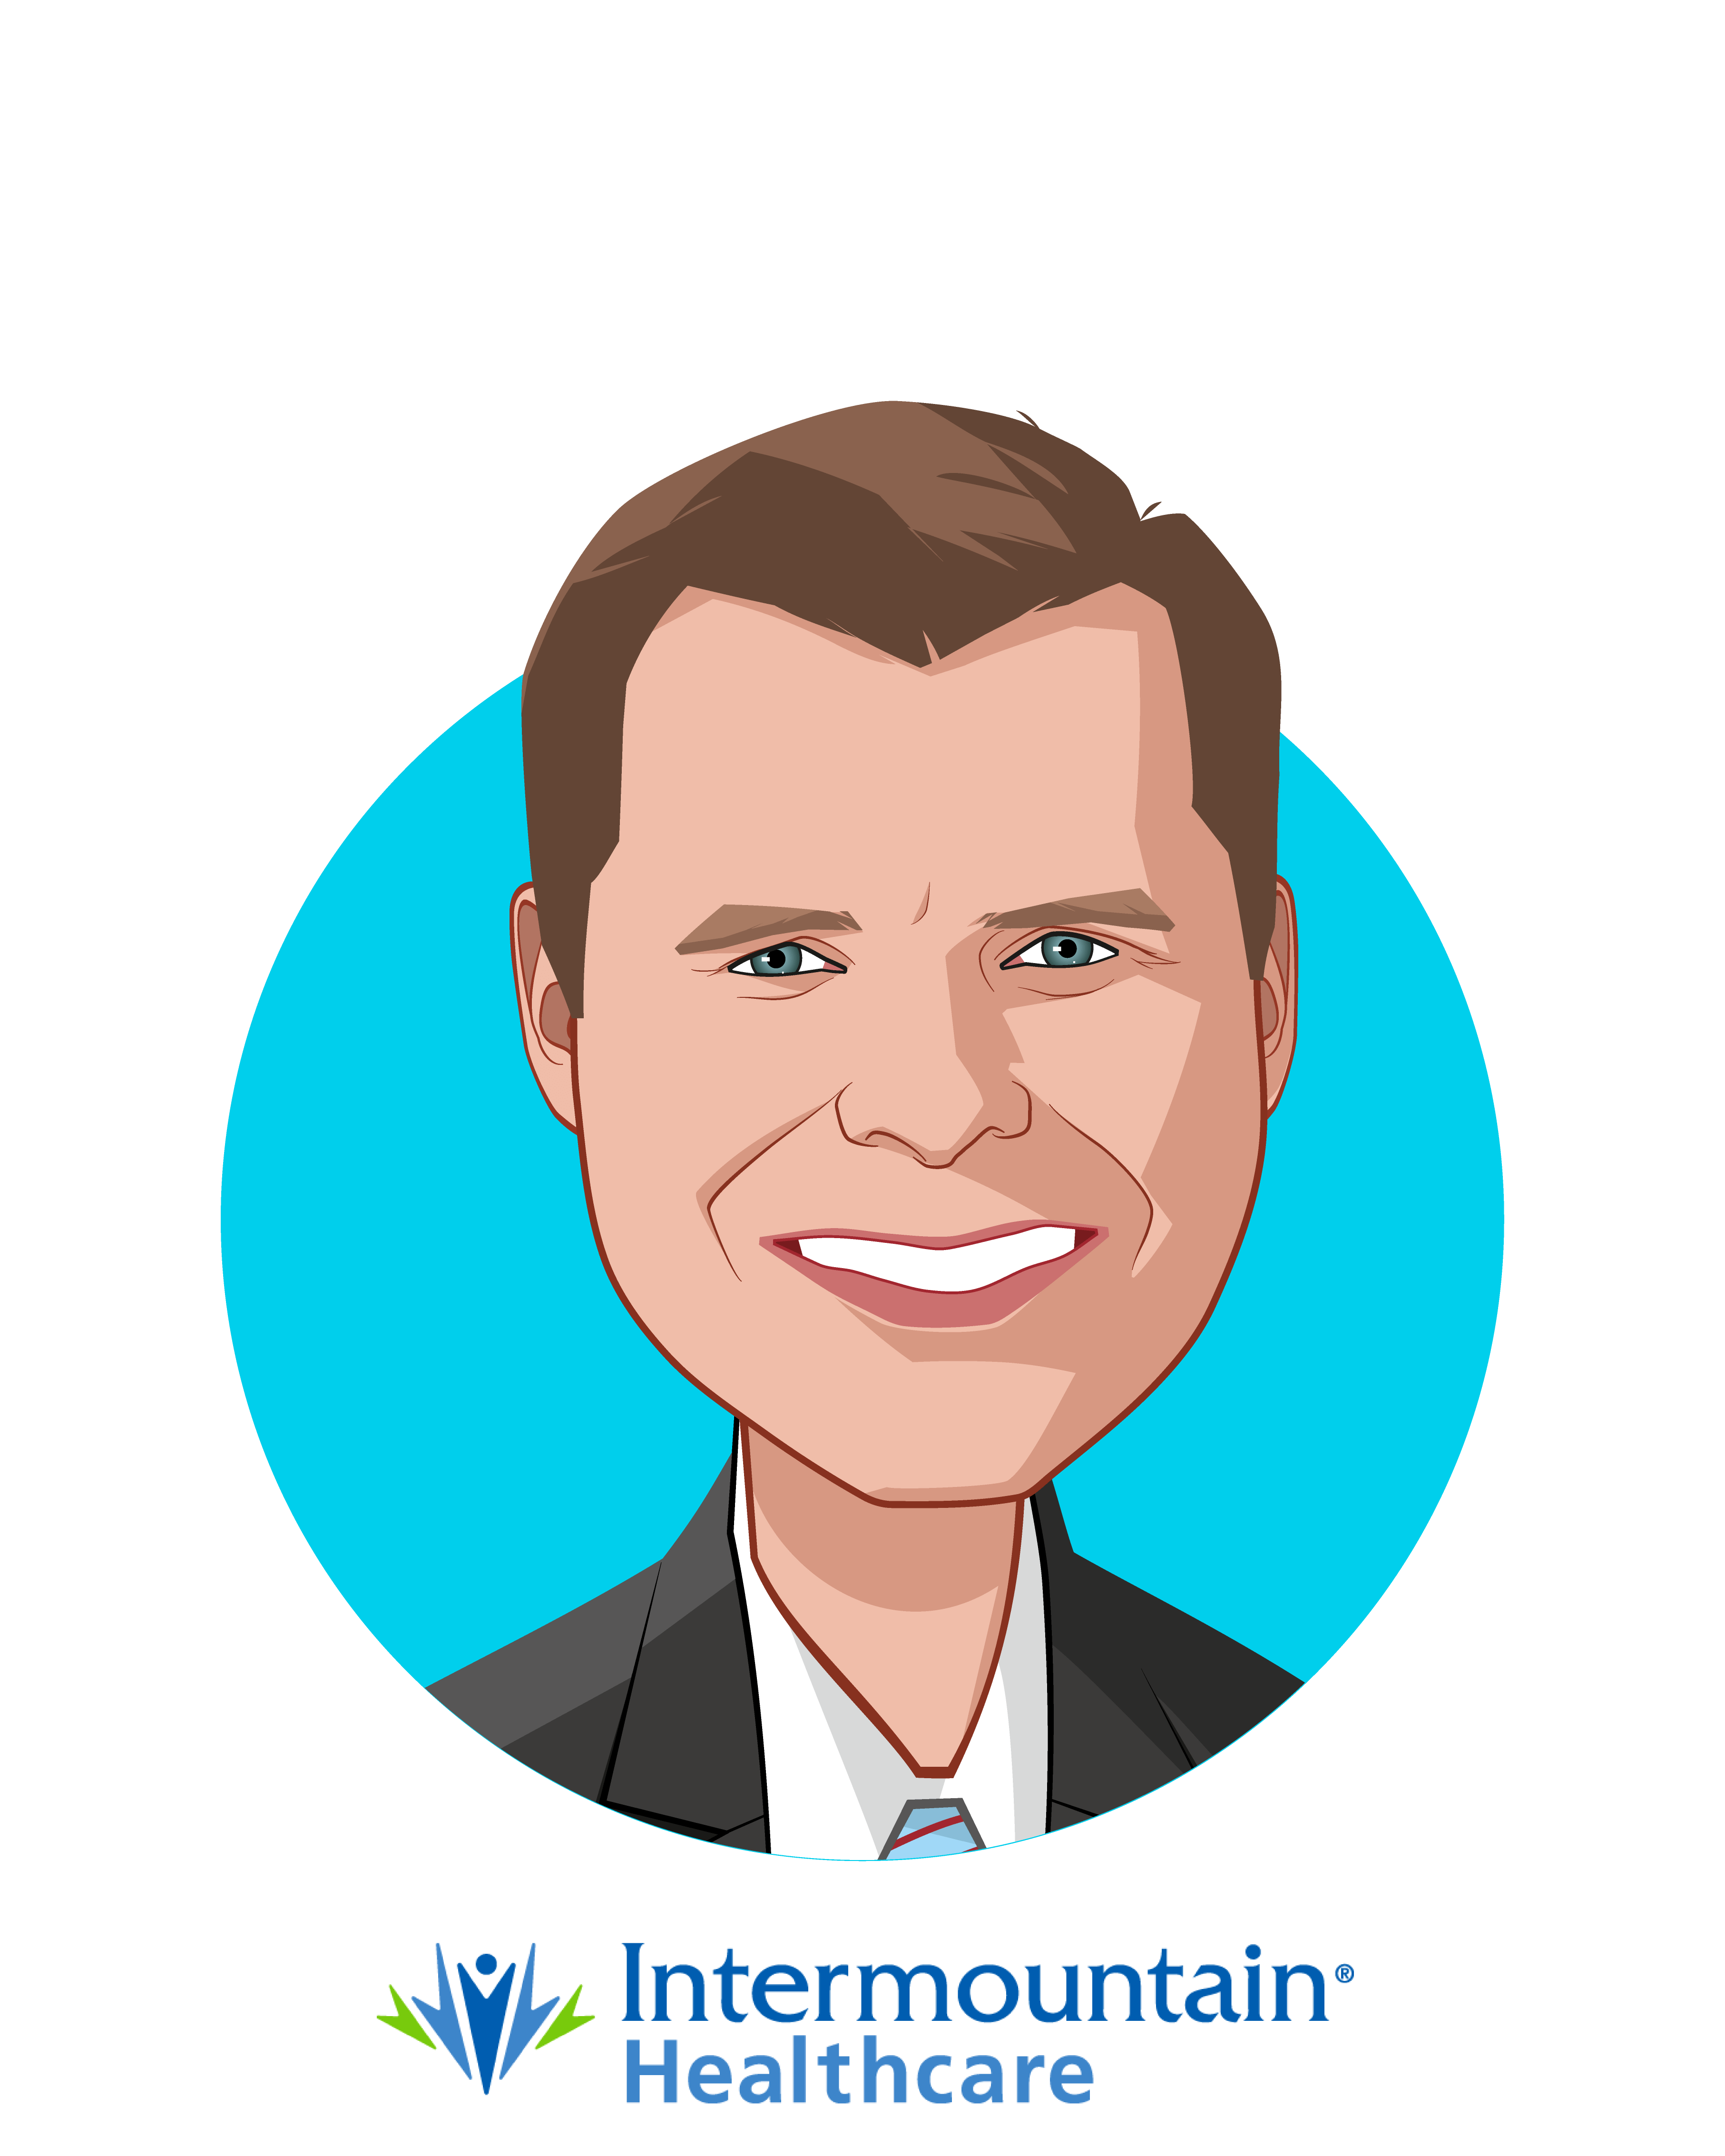 Main caricature of Dan Liljenquist, who is speaking at HLTH and is Senior Vice President & Chief Strategy Officer at Intermountain Healthcare